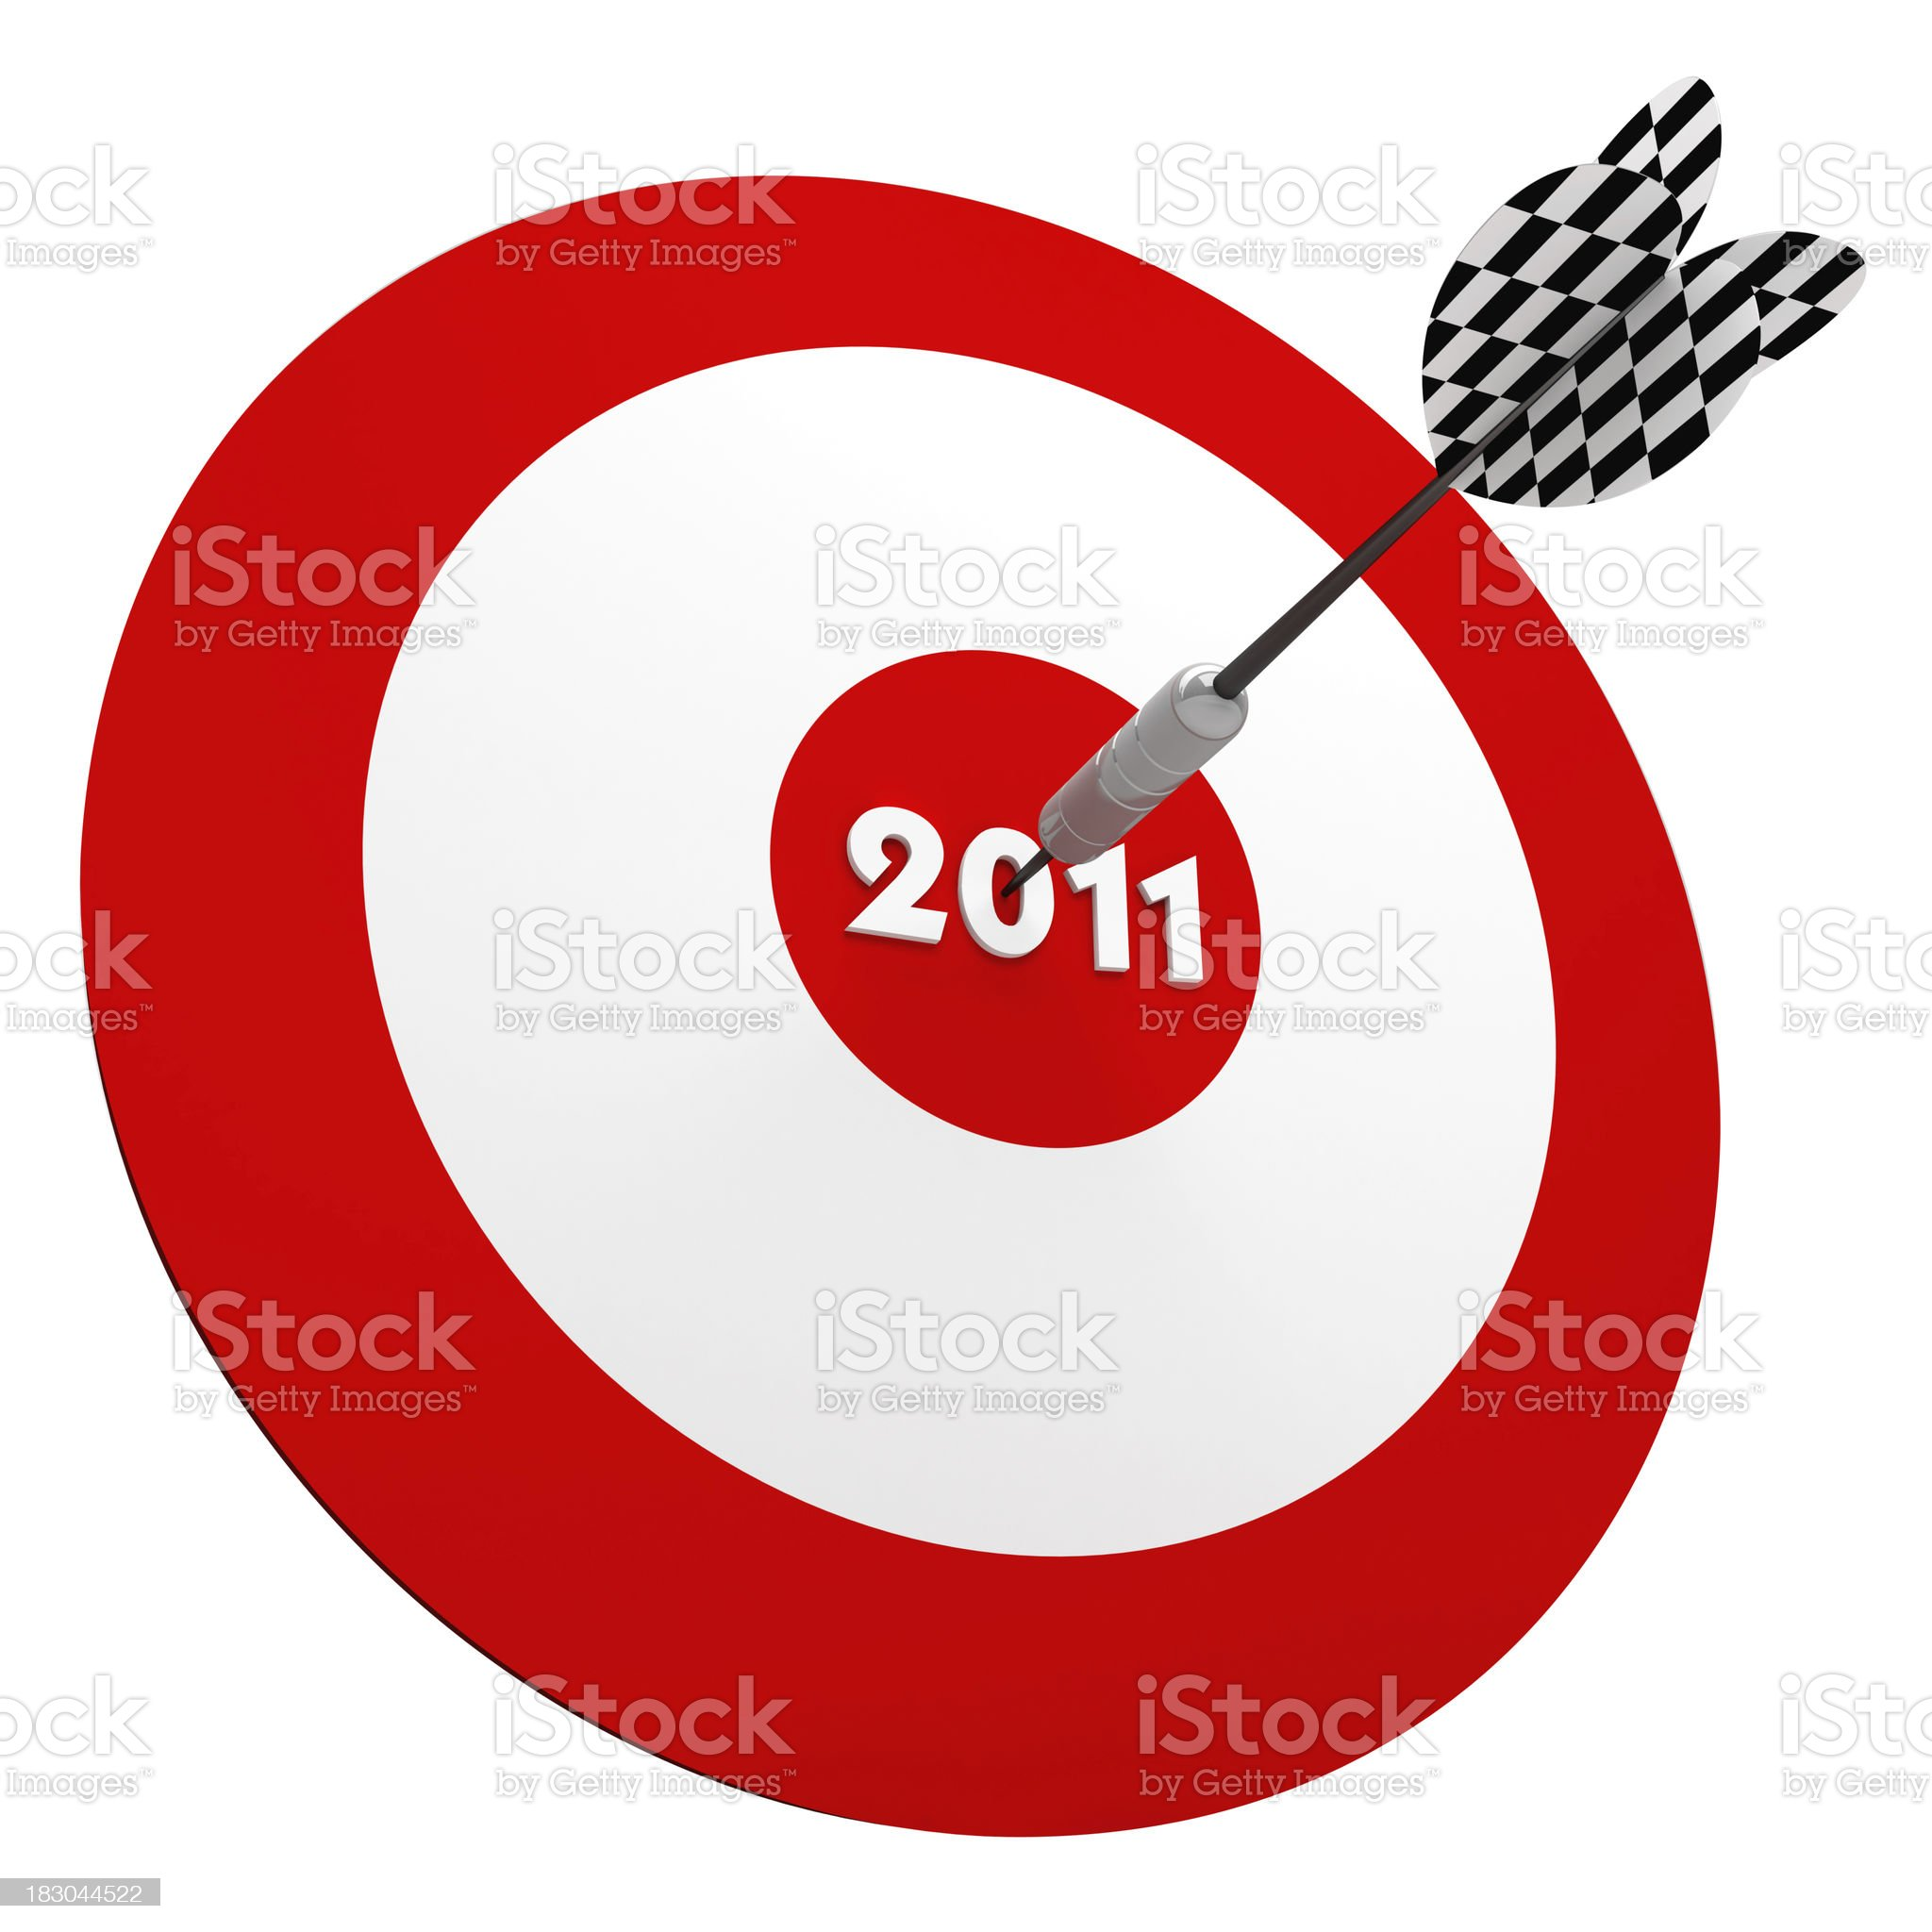 3D Dart in Center of 2011 years Target royalty-free stock photo